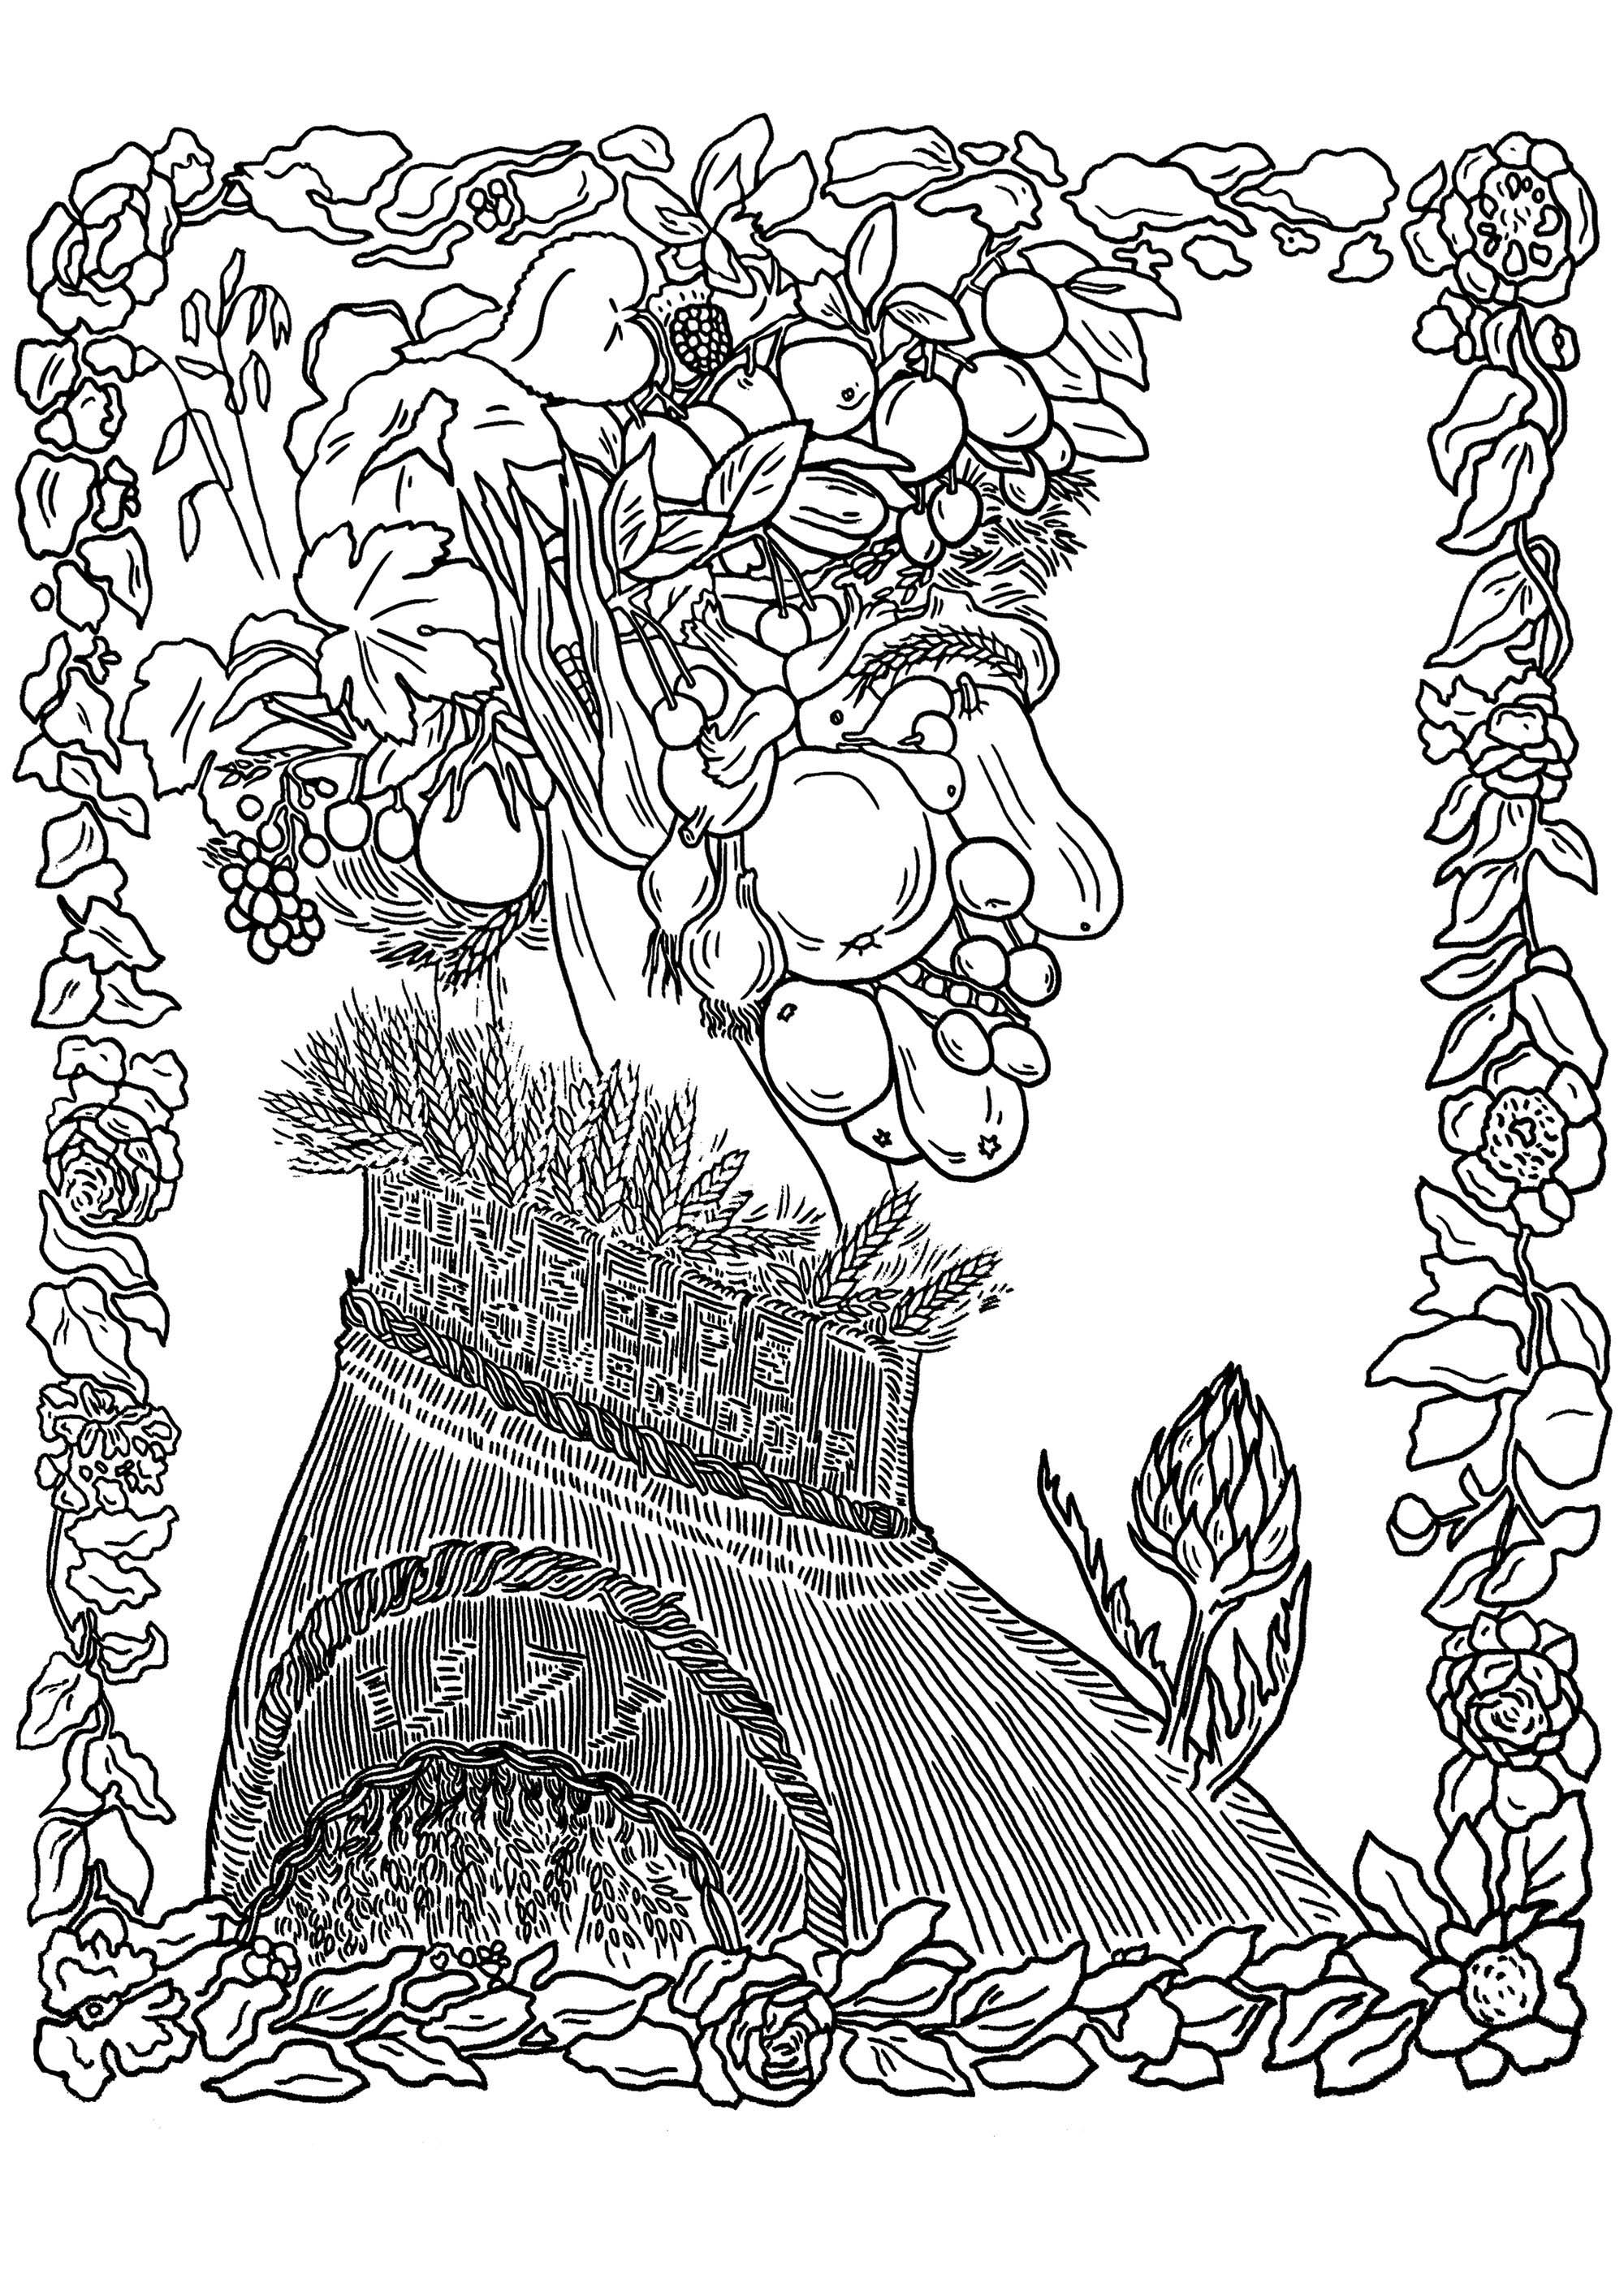 Coloring page giuseppe arcimboldo summer a portrait head made entirely of fruits vegetables and flowers by giuseppe arcimboldo